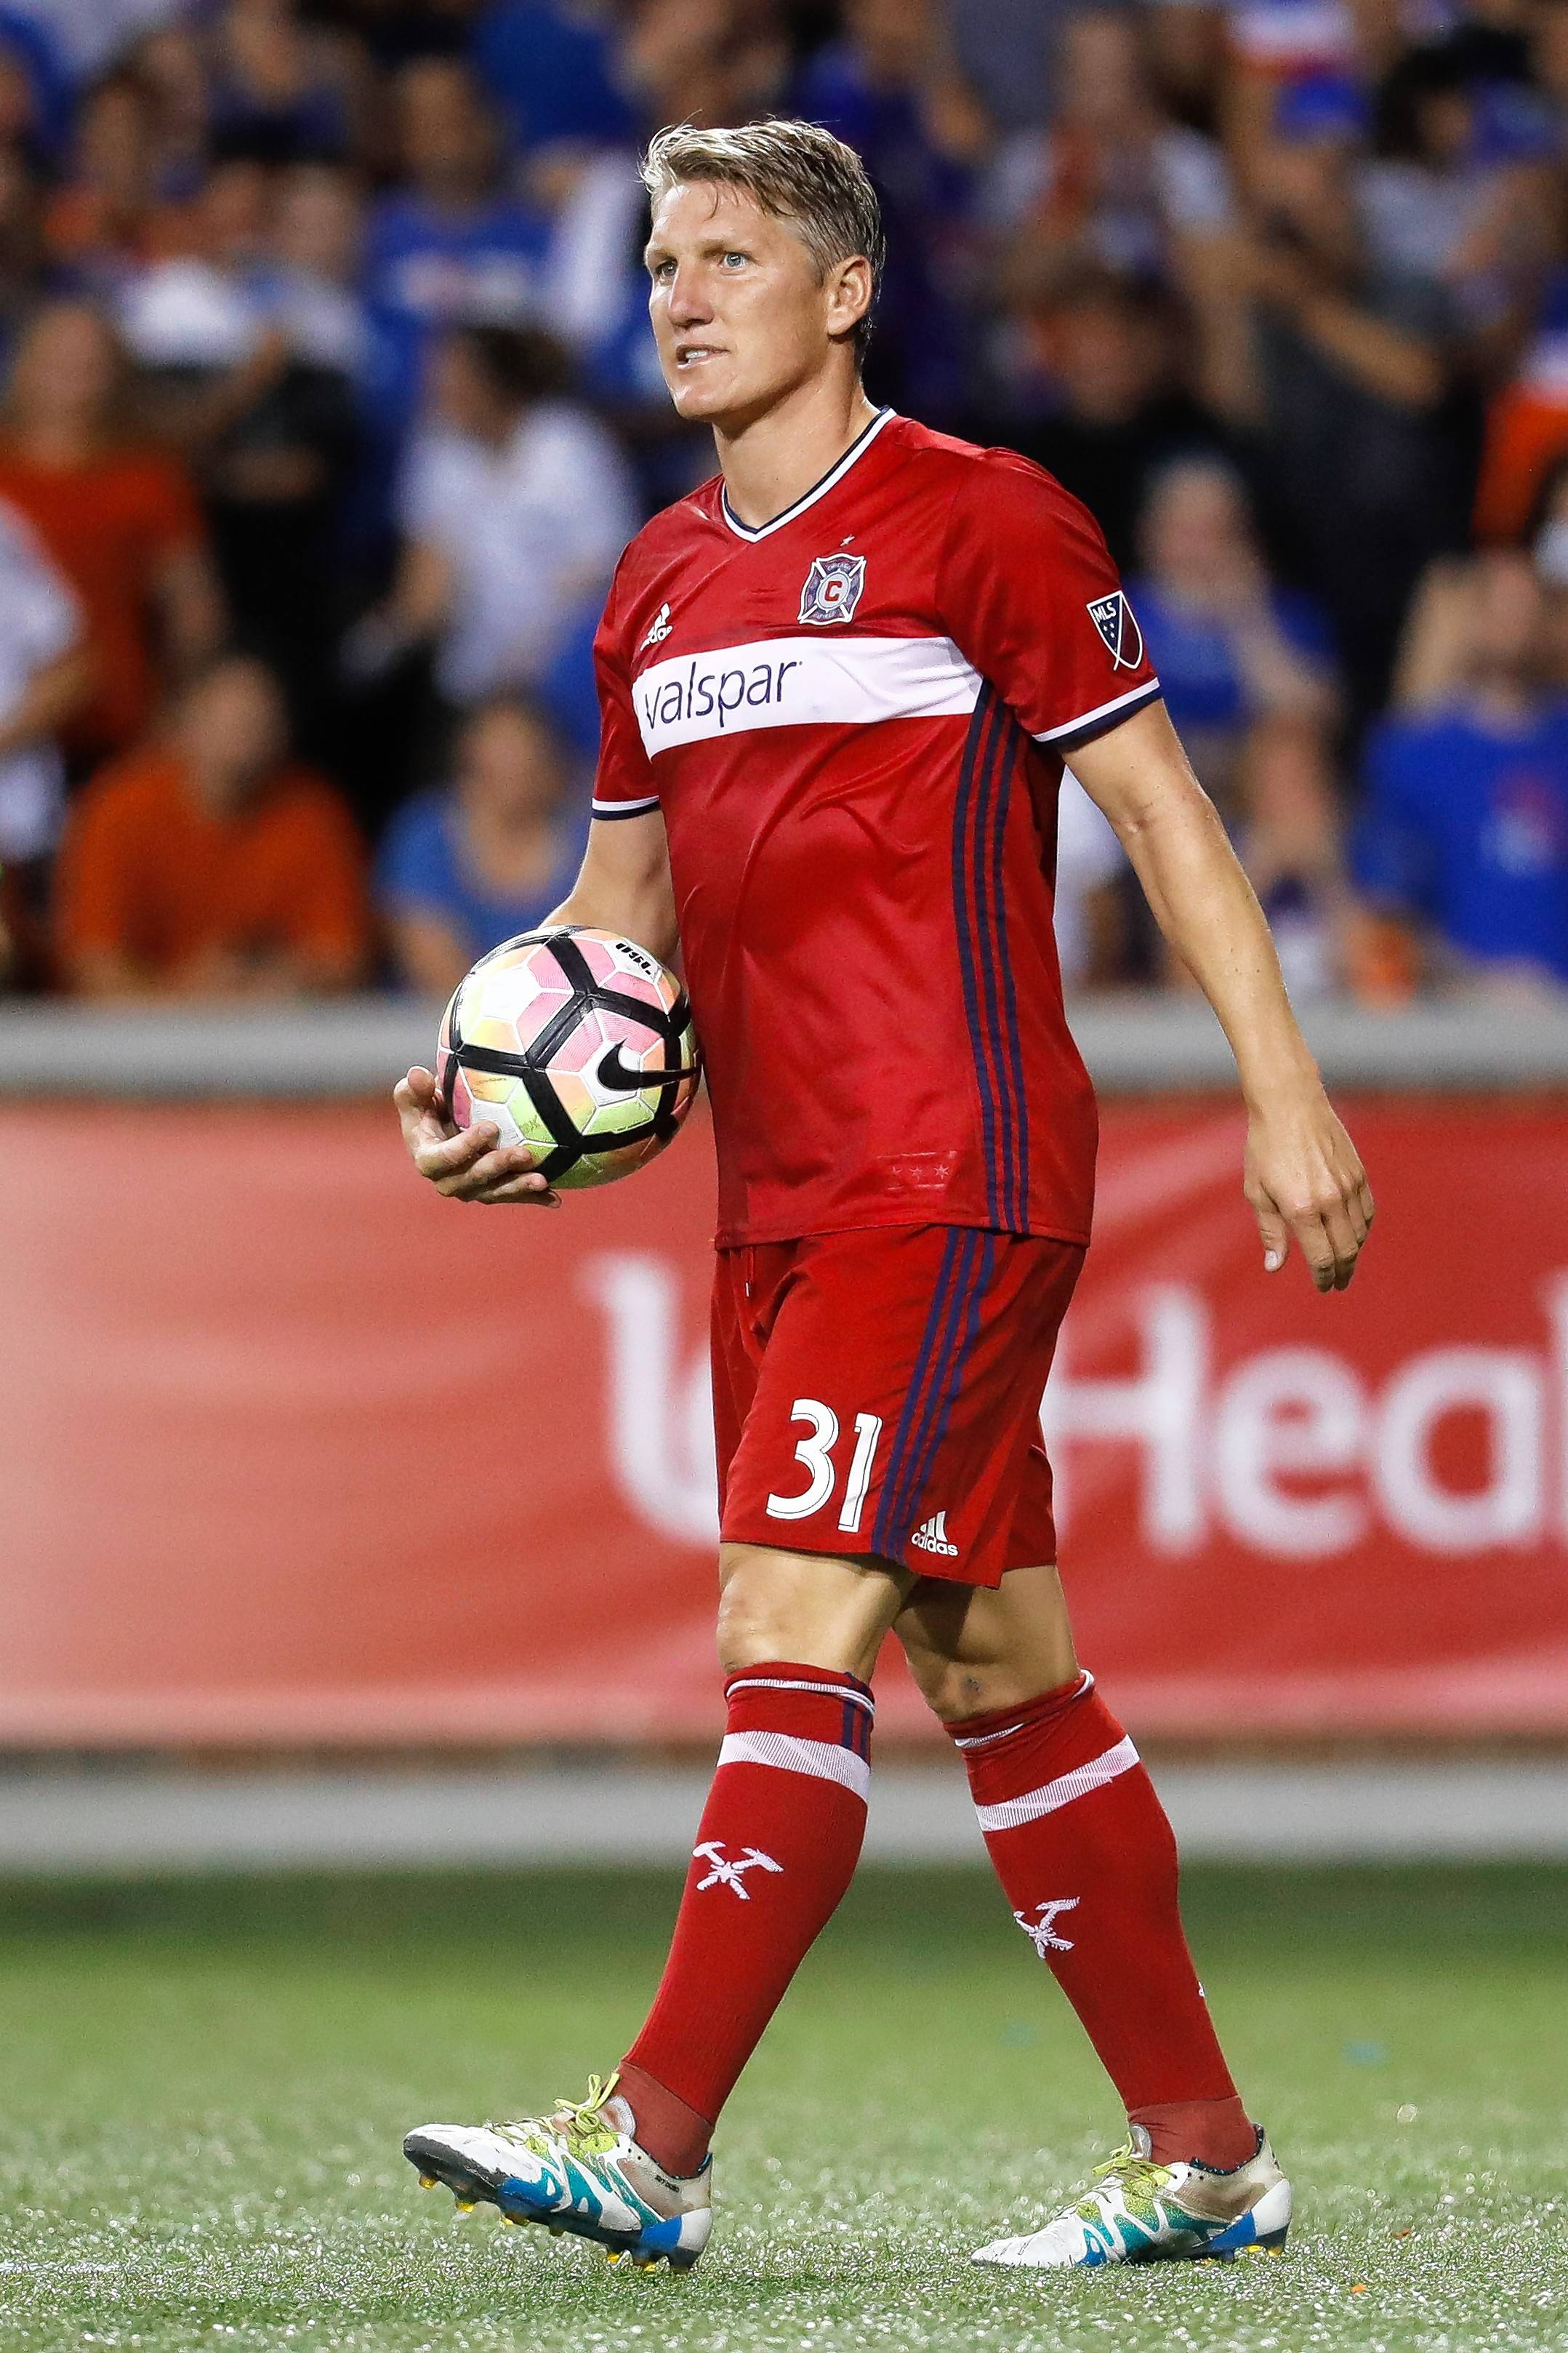 Chicago Fire midfielder Bastian Schweinsteiger believes his team has enough character and talent to stop its losing skid.